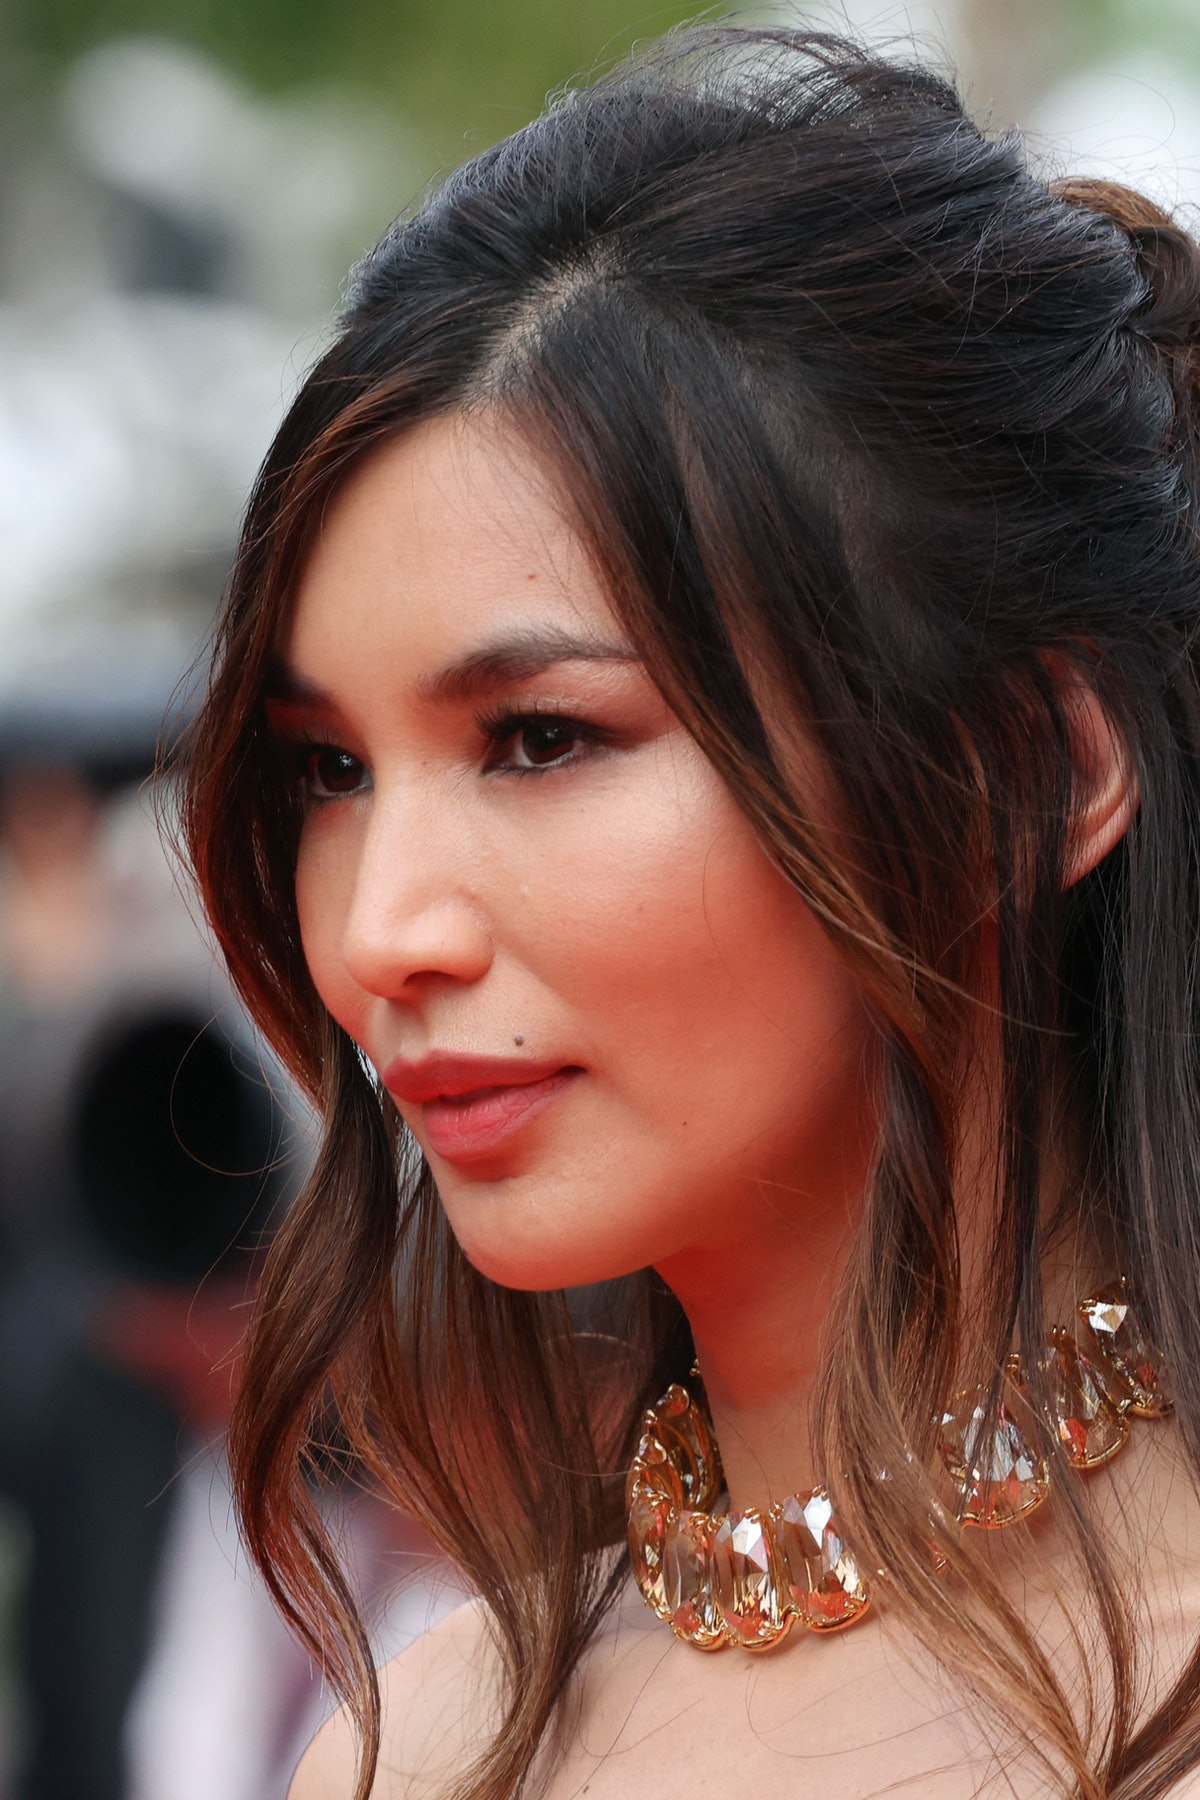 """British actress Gemma Chan arrives for the screening of the film """"Les Intranquilles (The Restless)"""" at the 74th edition of the Cannes Film Festival in Cannes, southern France, on July 16, 2021. (Photo by Valery HACHE / AFP) (Photo by VALERY HACHE/AFP via Getty Images)"""